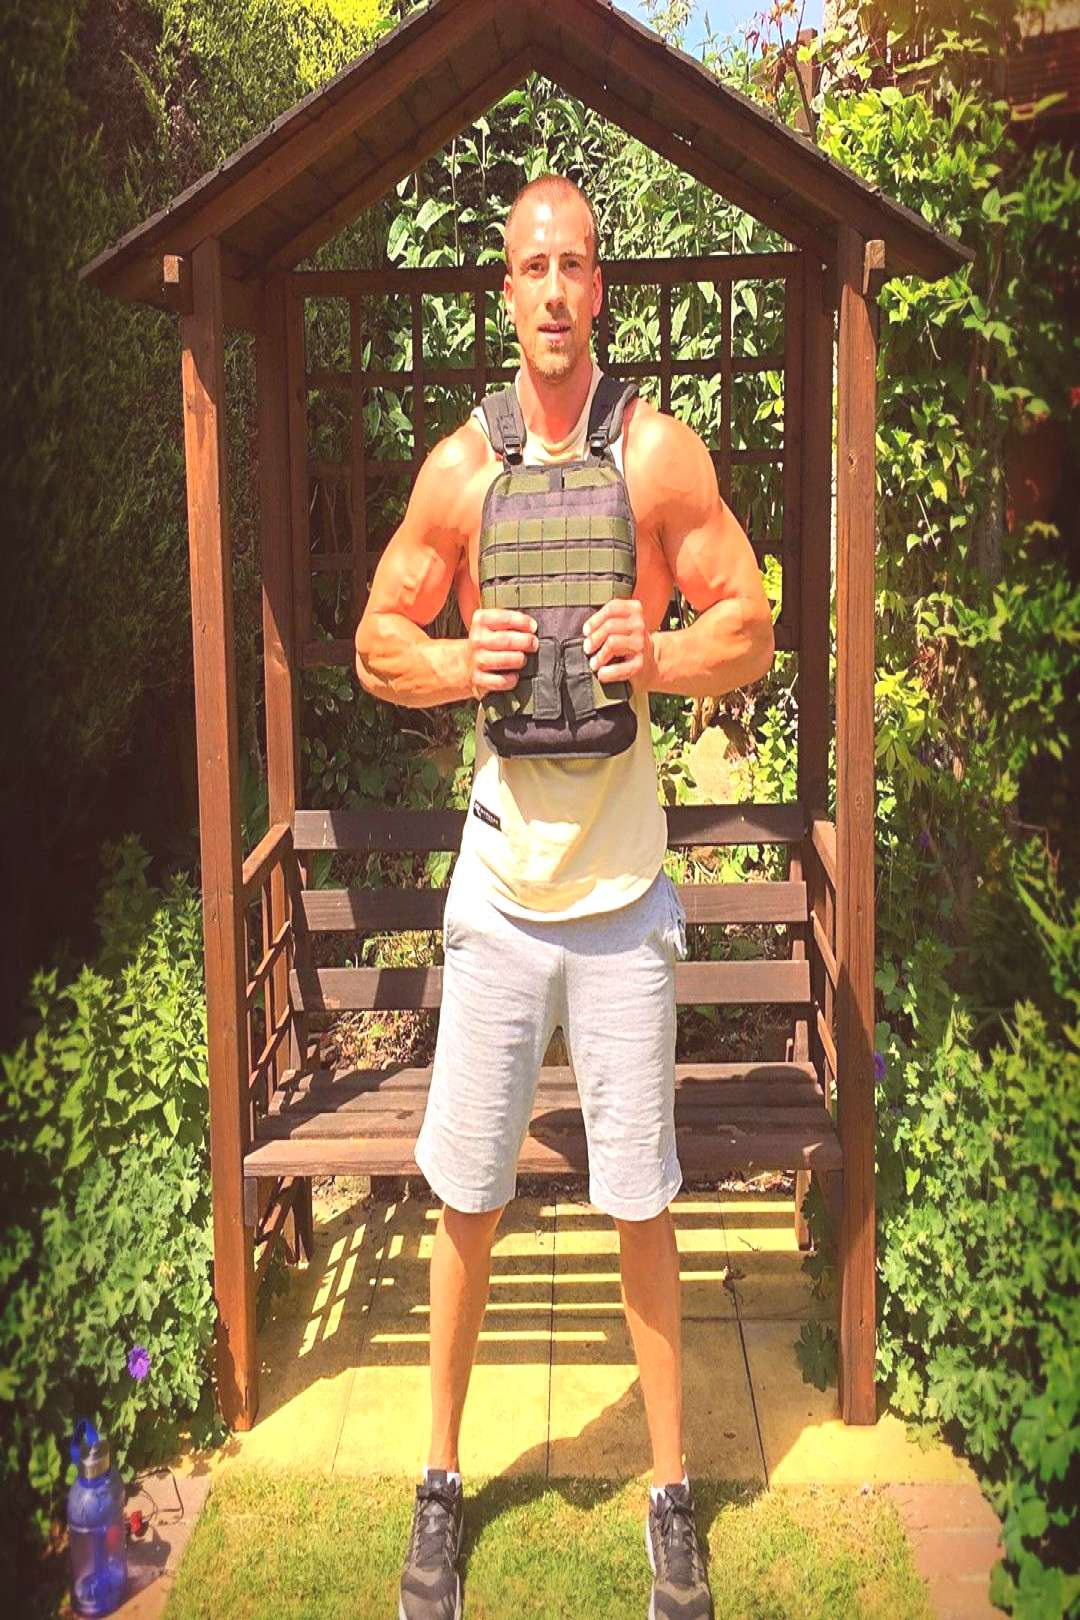 Oliver Bates Fitness Trainer on June 03 2020 1 person standing tr